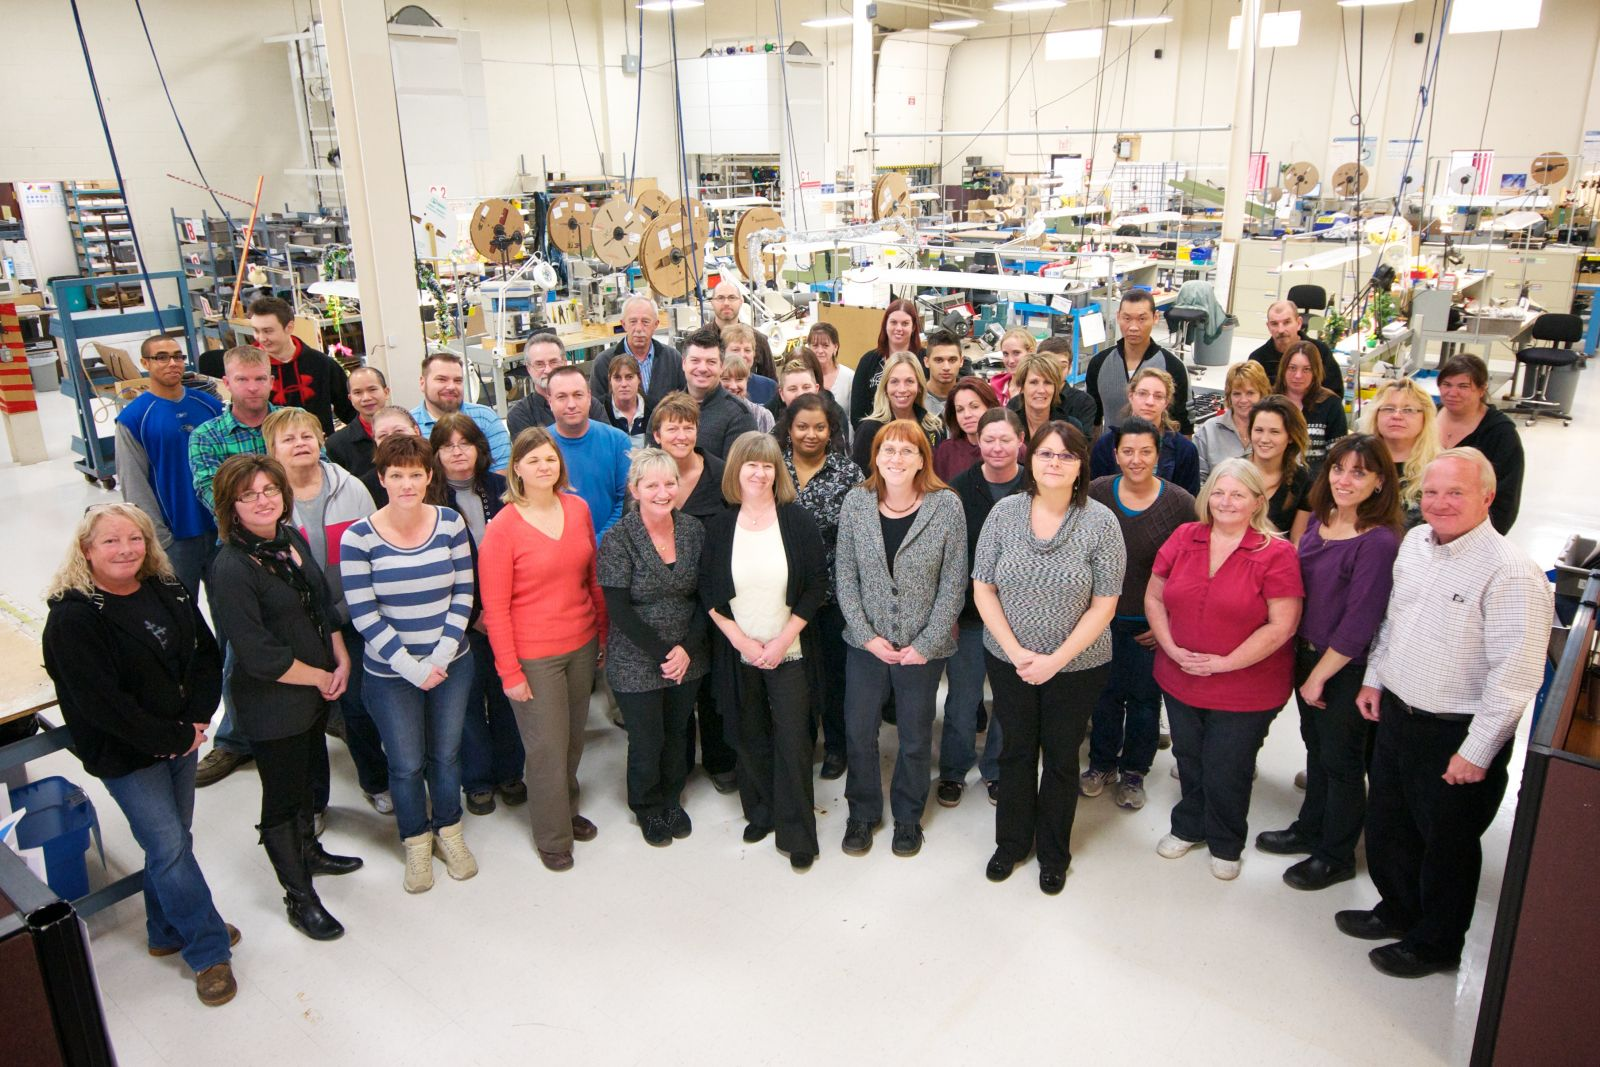 The Current Data Cable Team together on the manufacturing floor